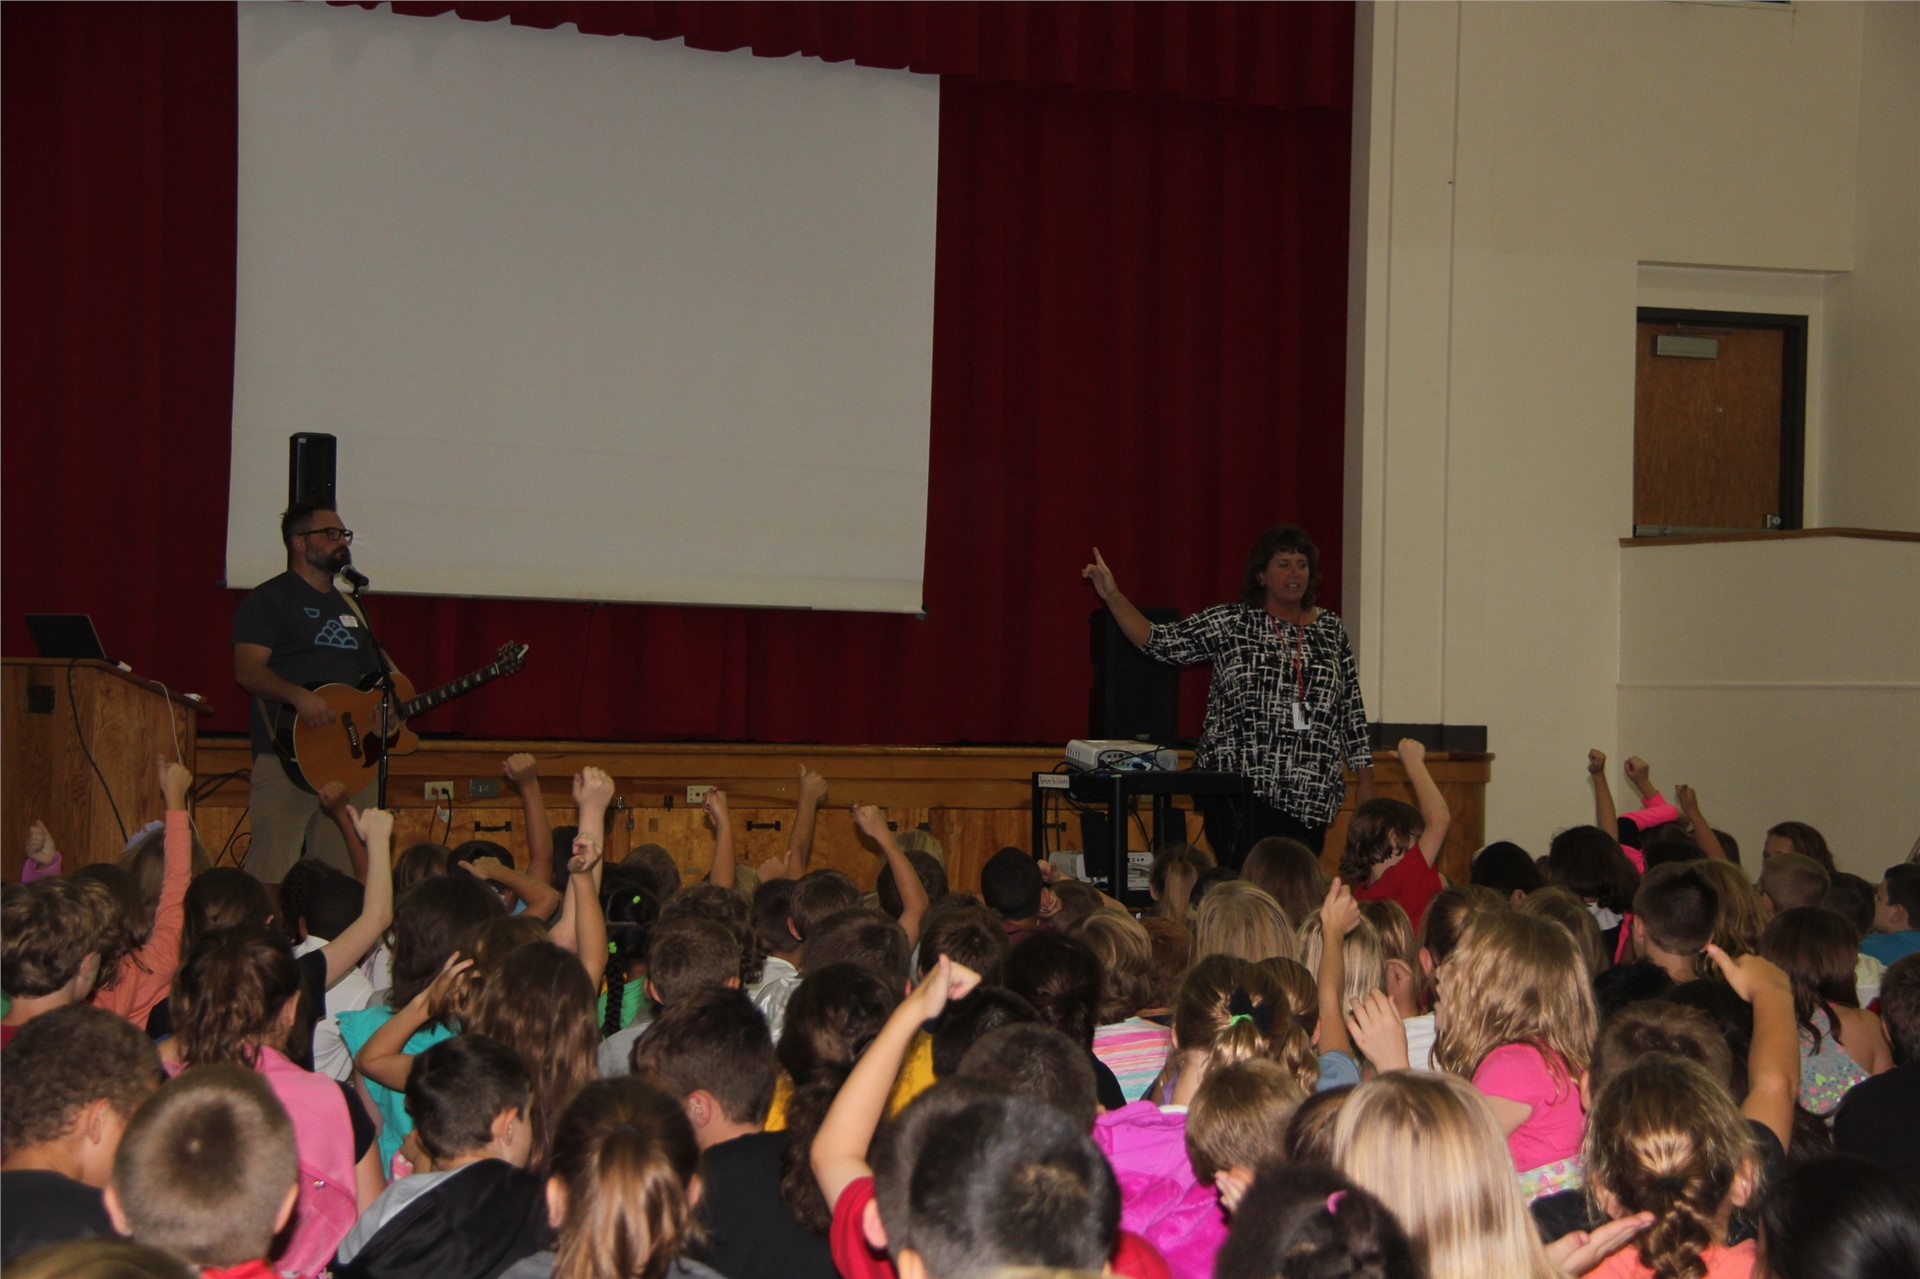 students raise hands to ask questions